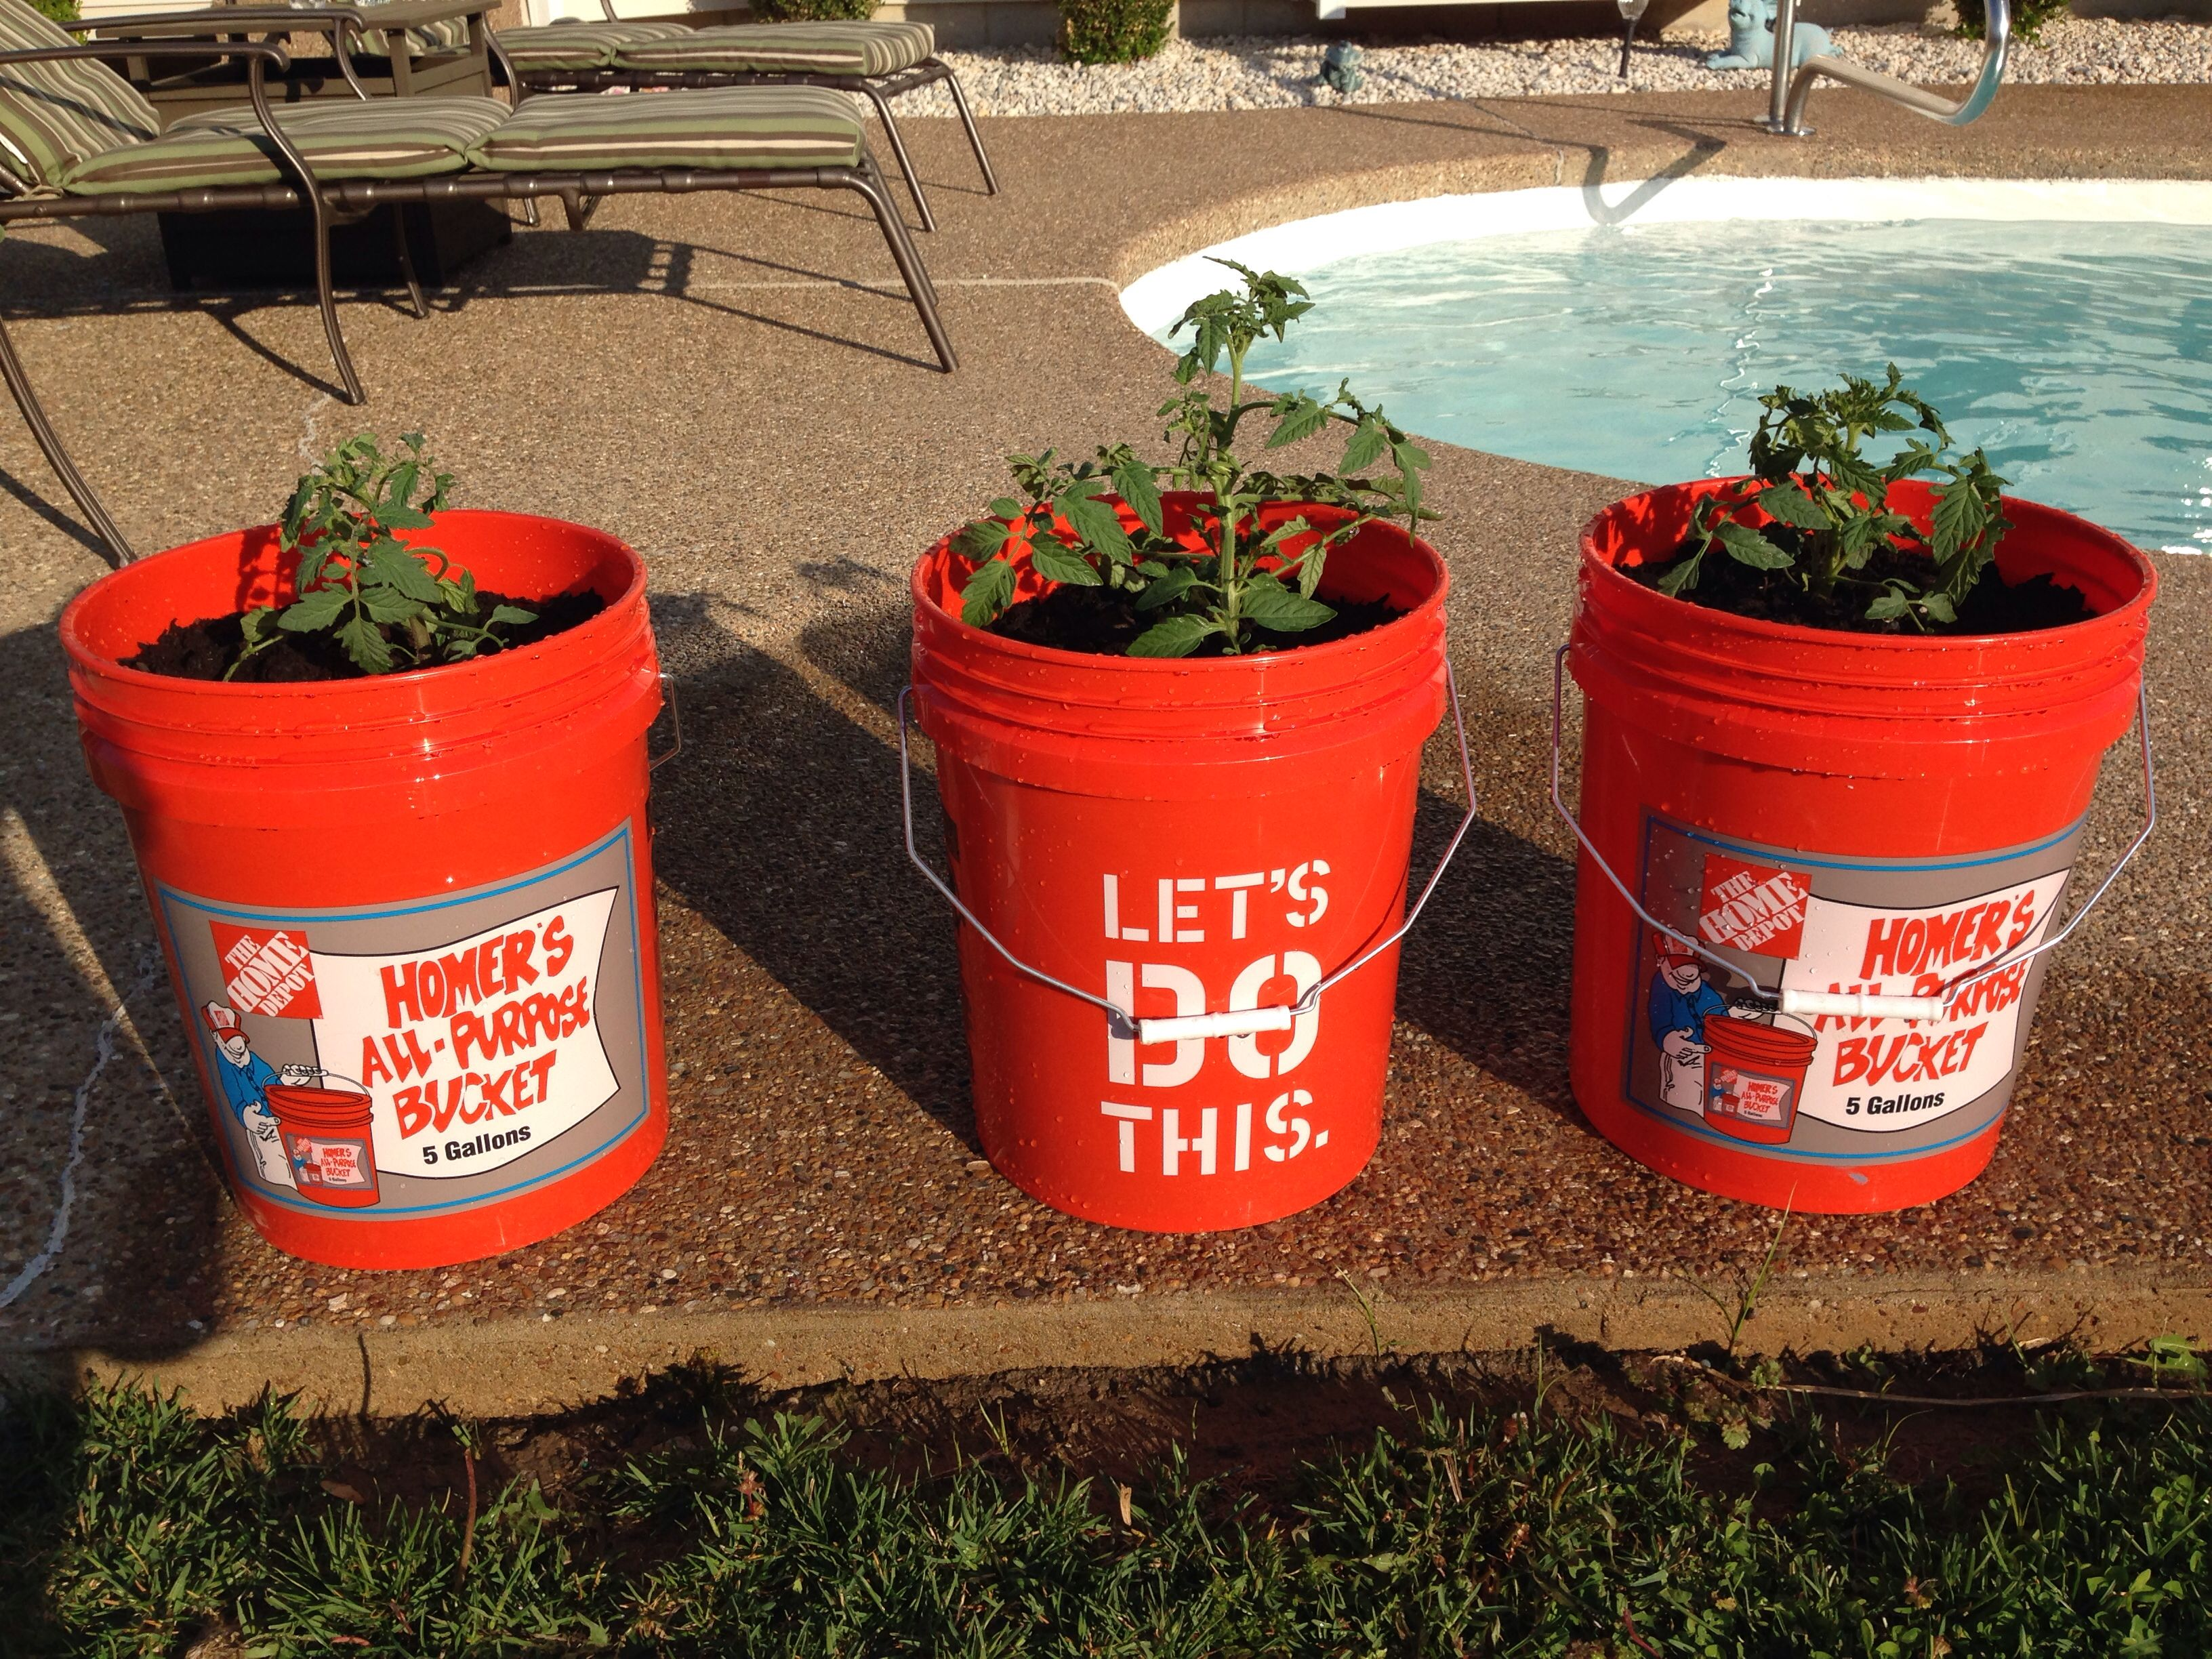 Tomato plants for the patio